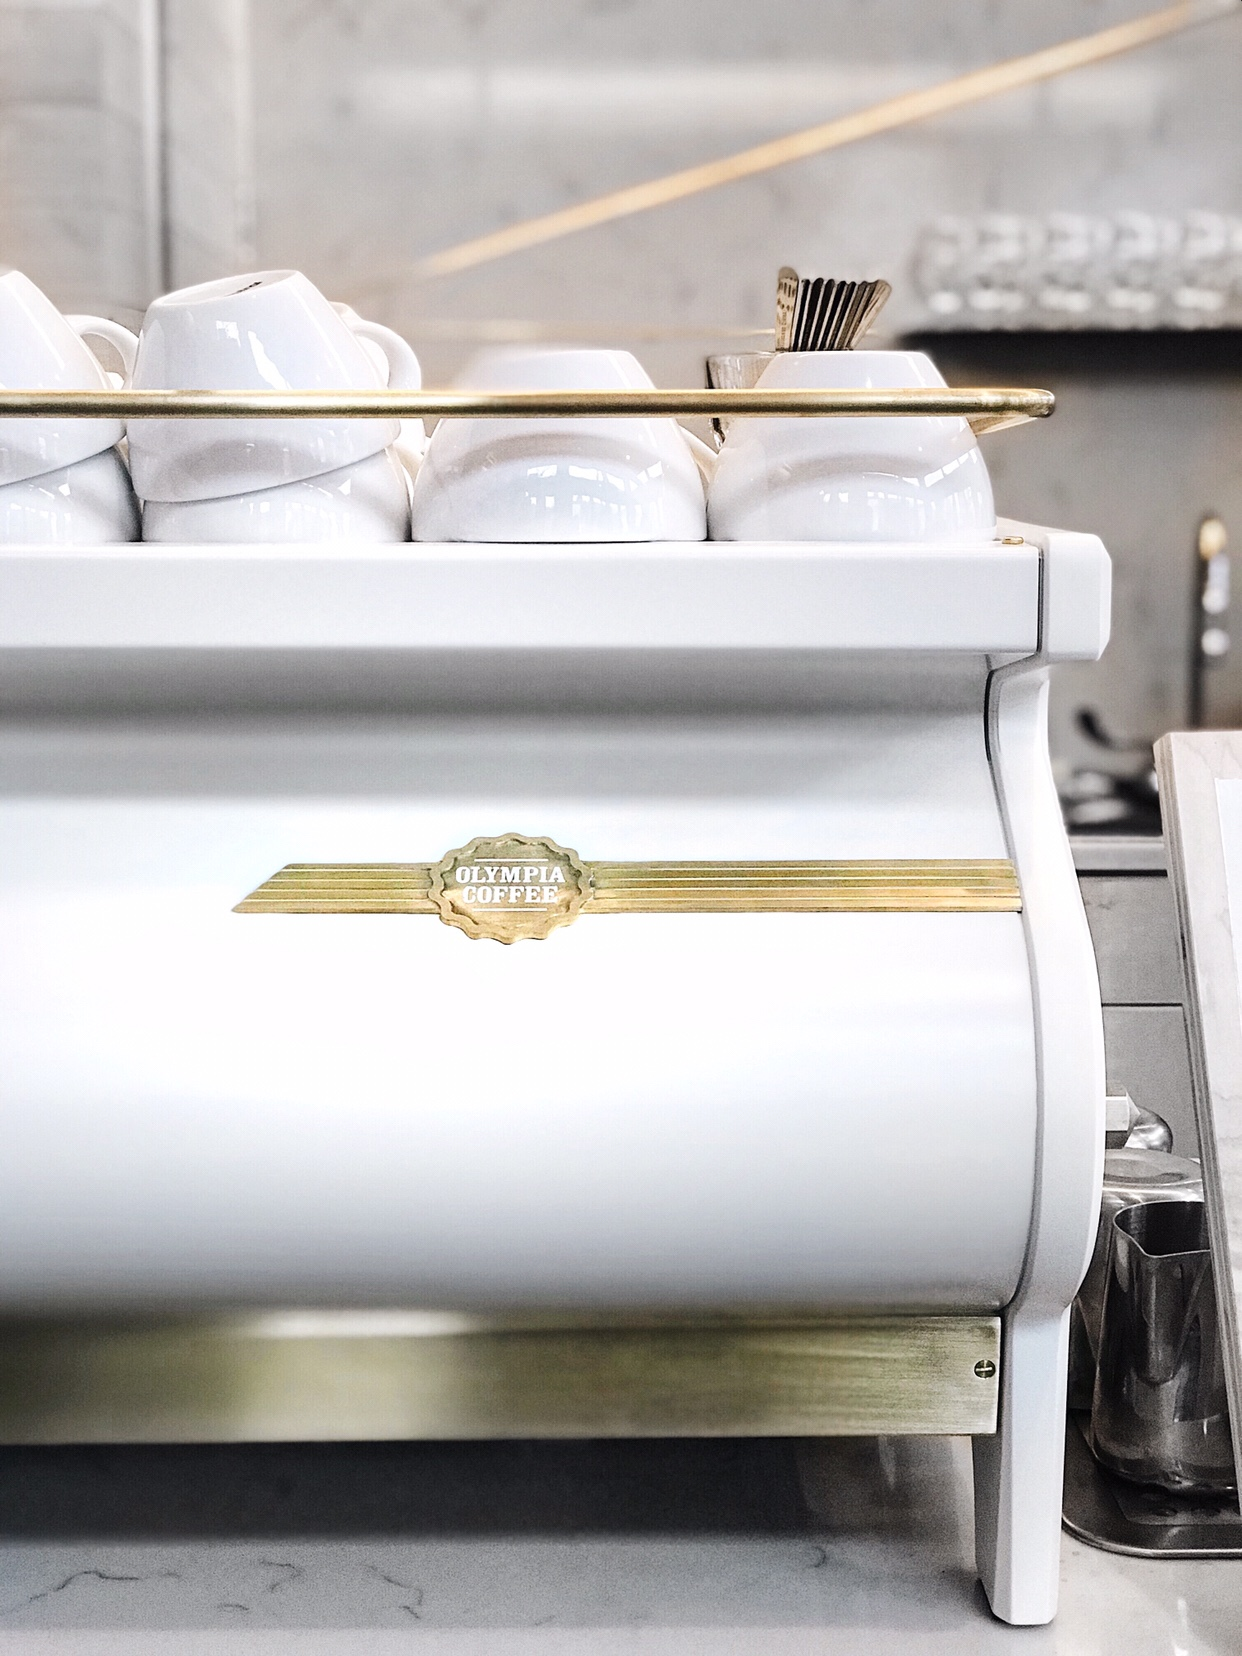 Custom white/gold La Marzocco Strada AV espresso machine designed by Pantechnicon Design | beccarisaluna.com